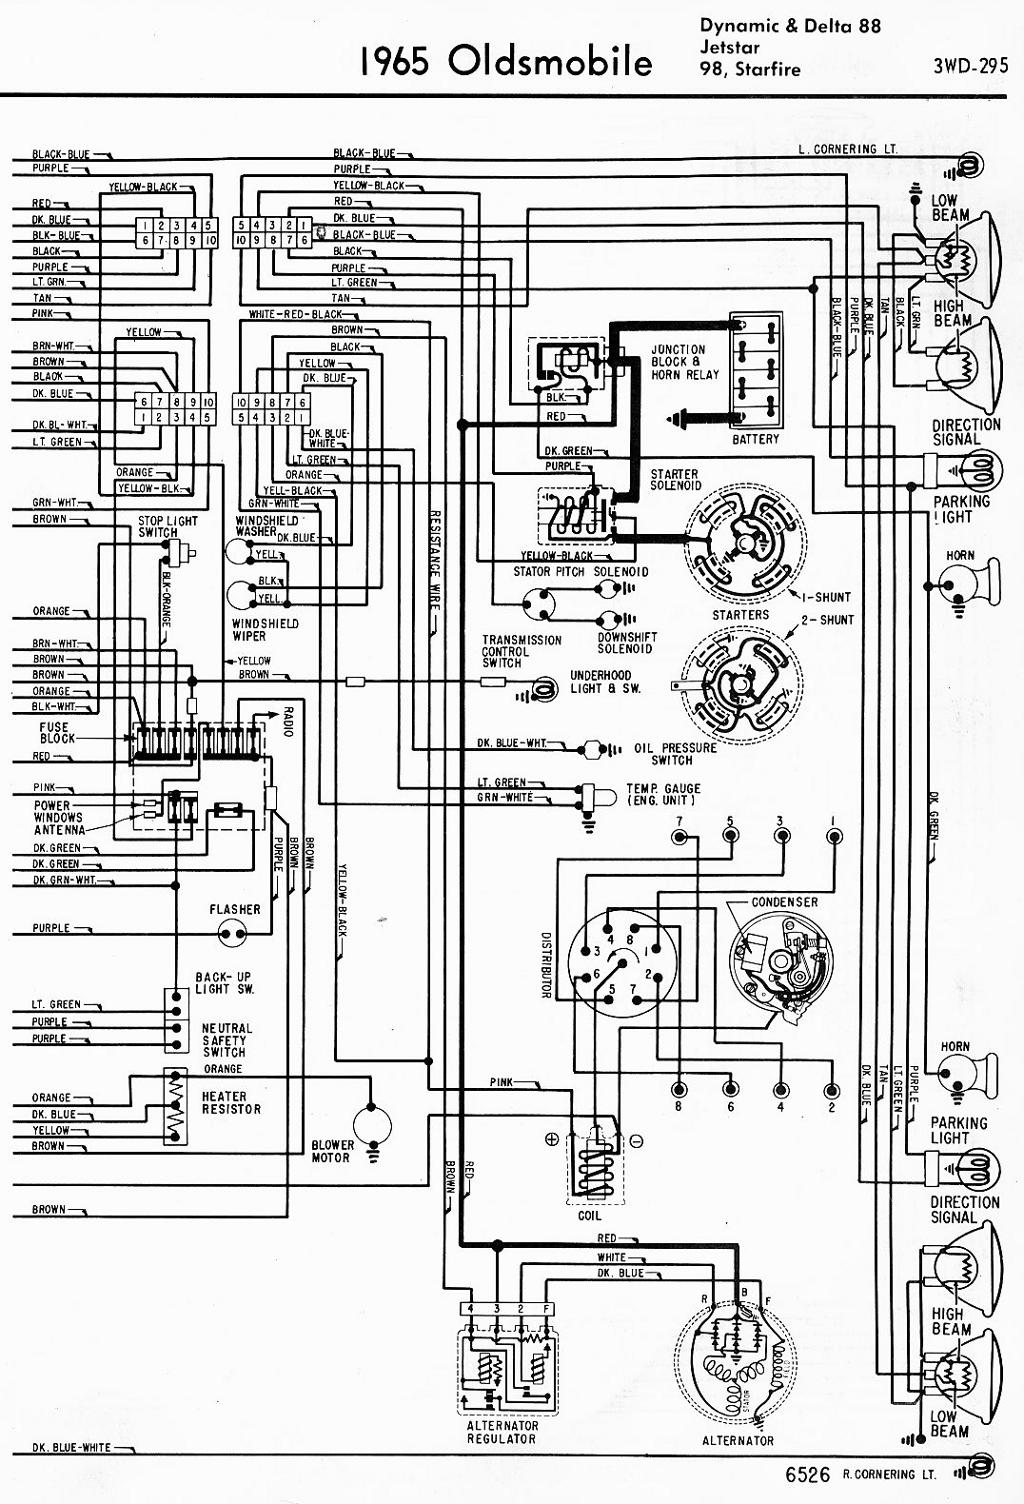 car radio wiring diagram 1998 oldsmobile simple wiring schema timing chain diagram free download wiring diagram schematic [ 1024 x 1504 Pixel ]